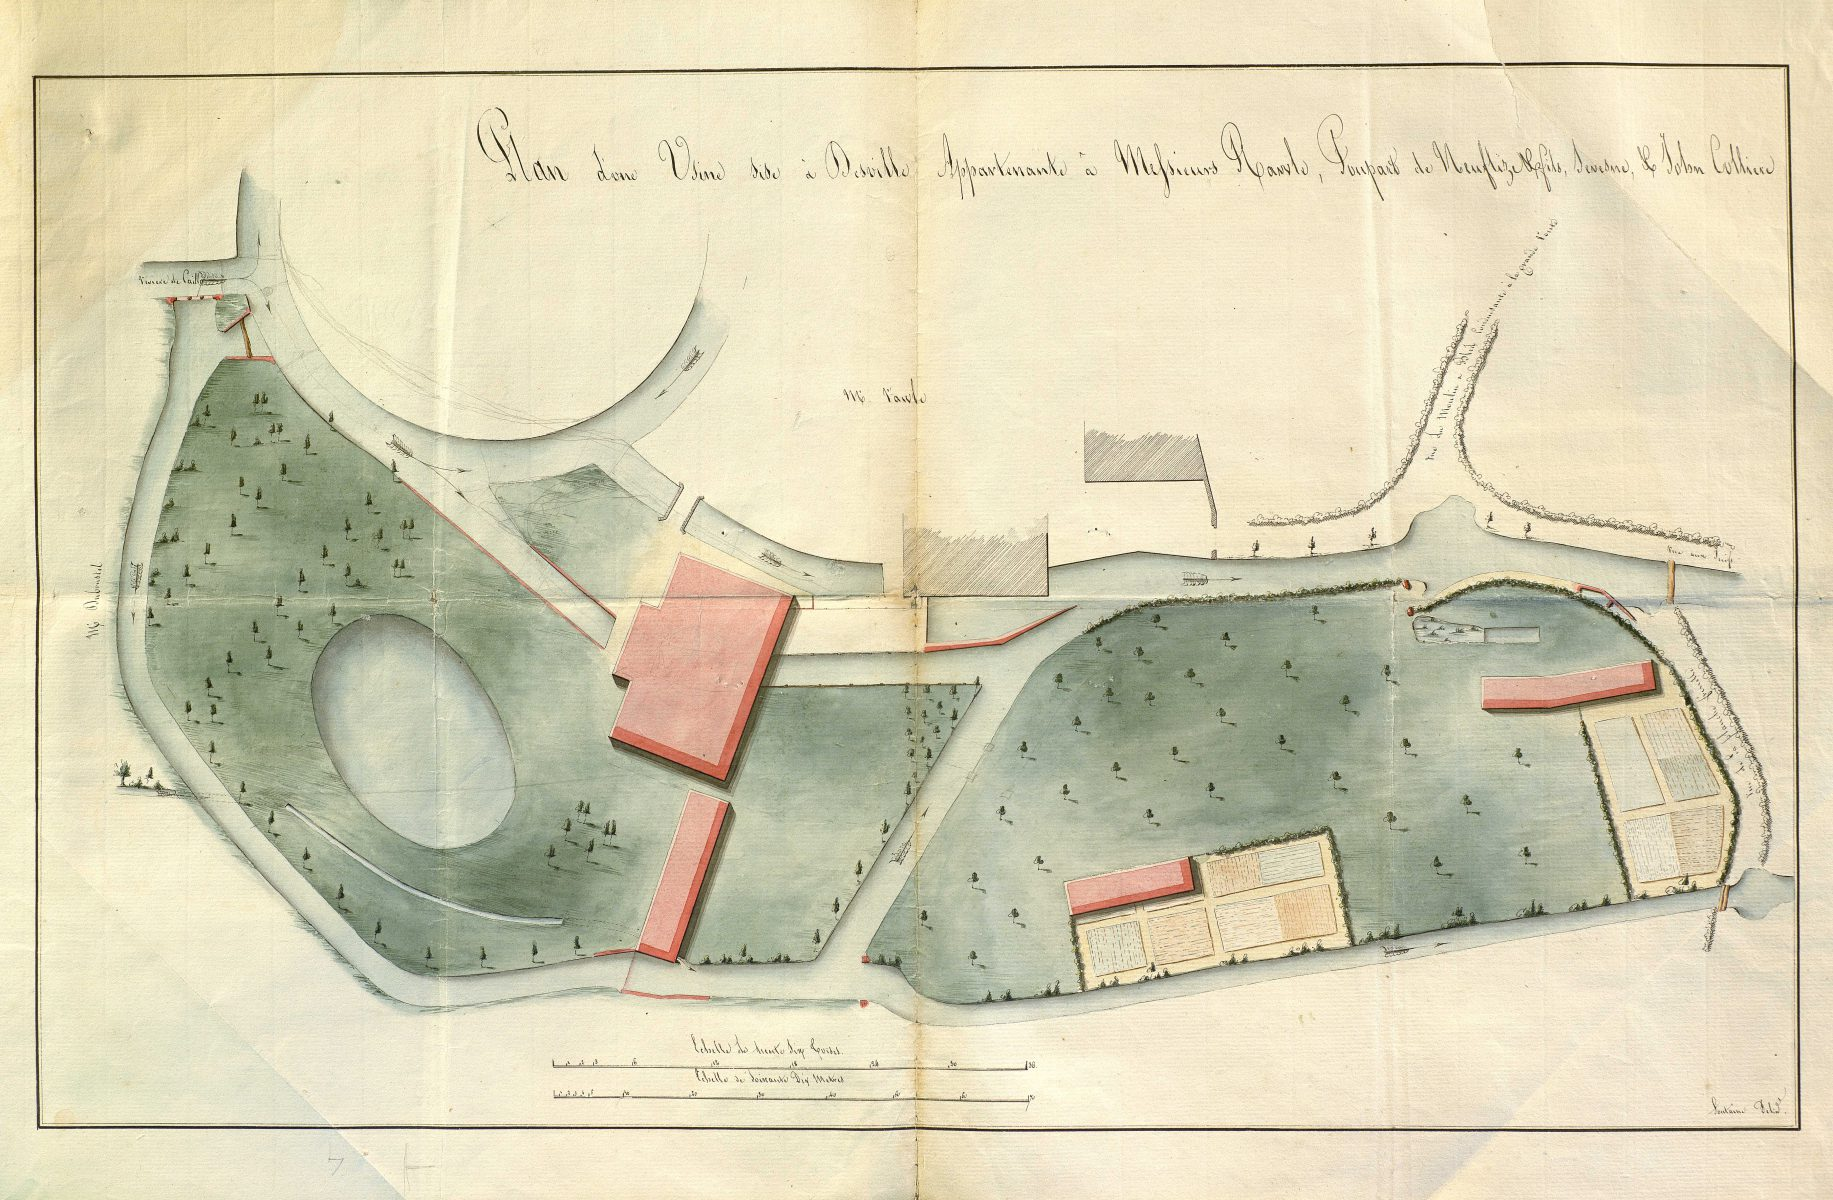 Plan of a factory in Déville owned by Messrs. Rawle, Poupard de Neuflize and son, Sevesne and John Colliere